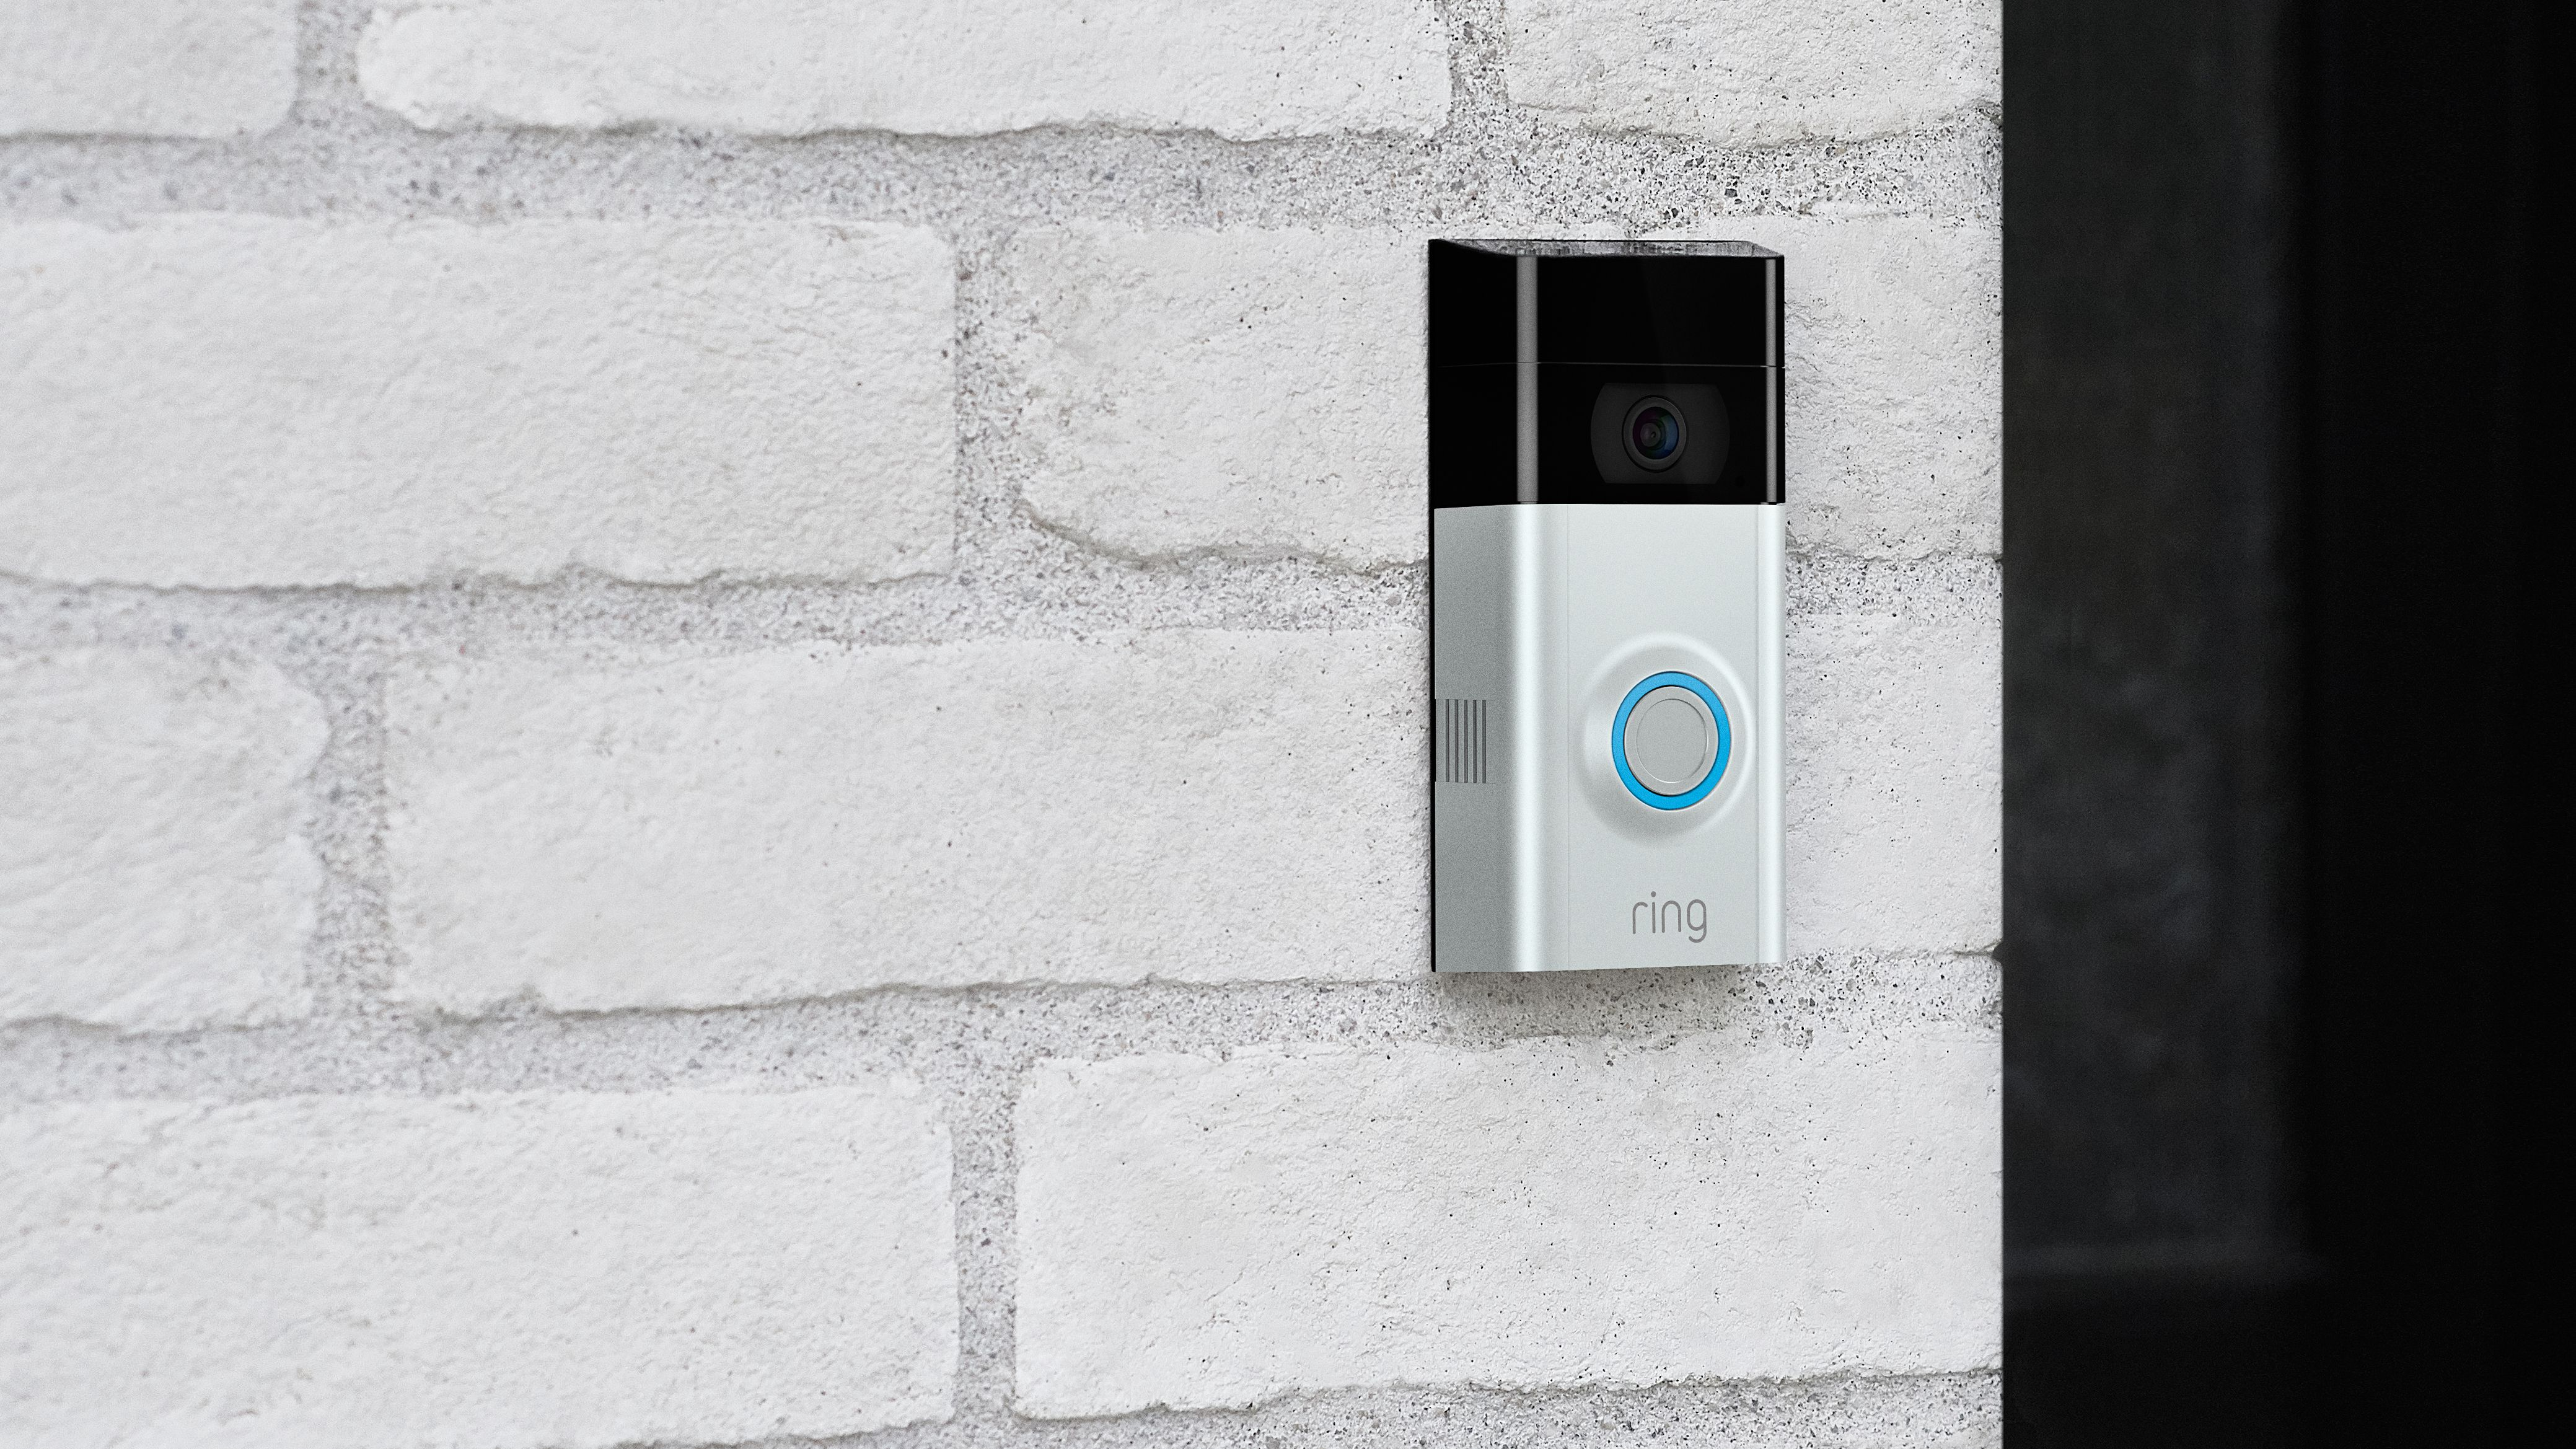 How To Add Ring Doorbell To Google Home